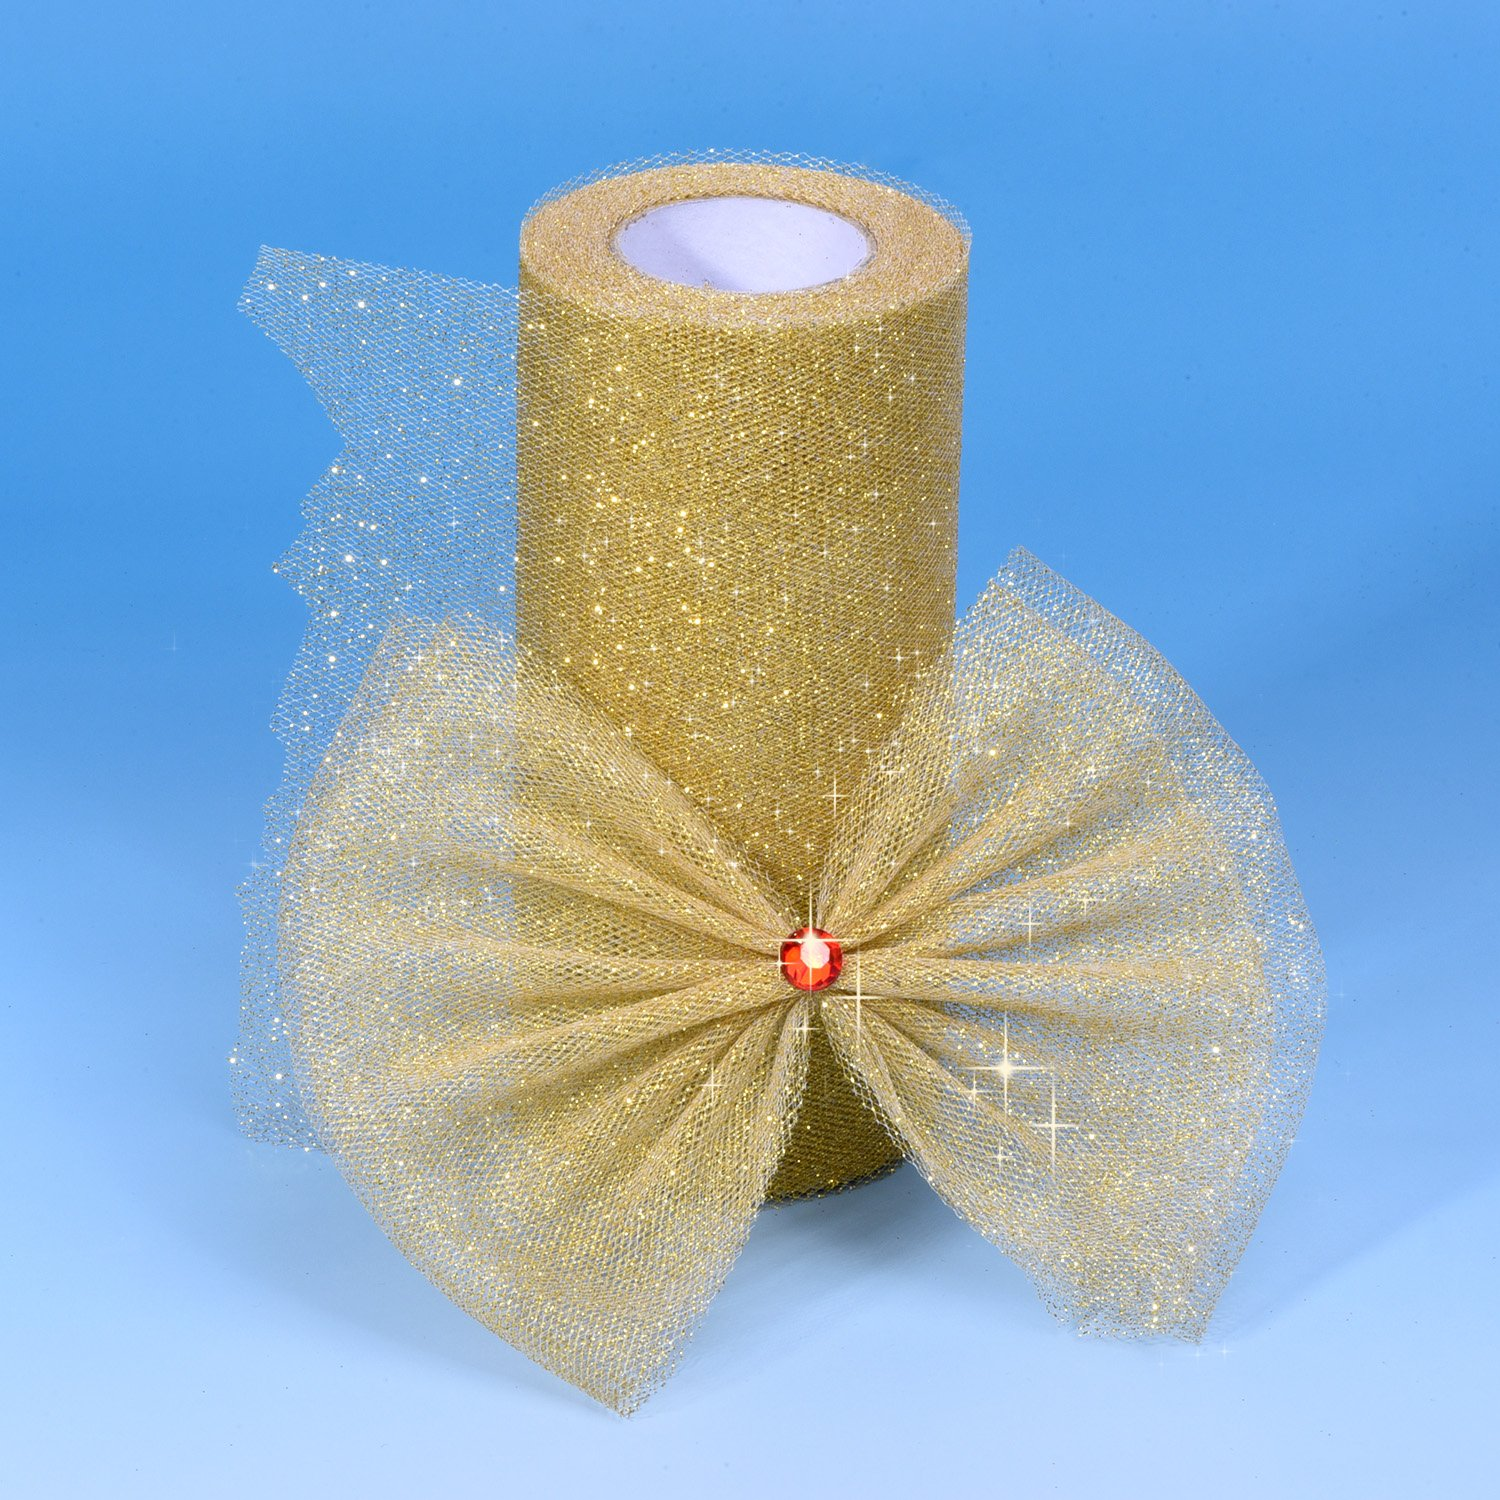 25 Yards Outus 6 Inch Sparkling Tulle Ribbon Roll Glitter Tulle Roll Tulle Spool Gold